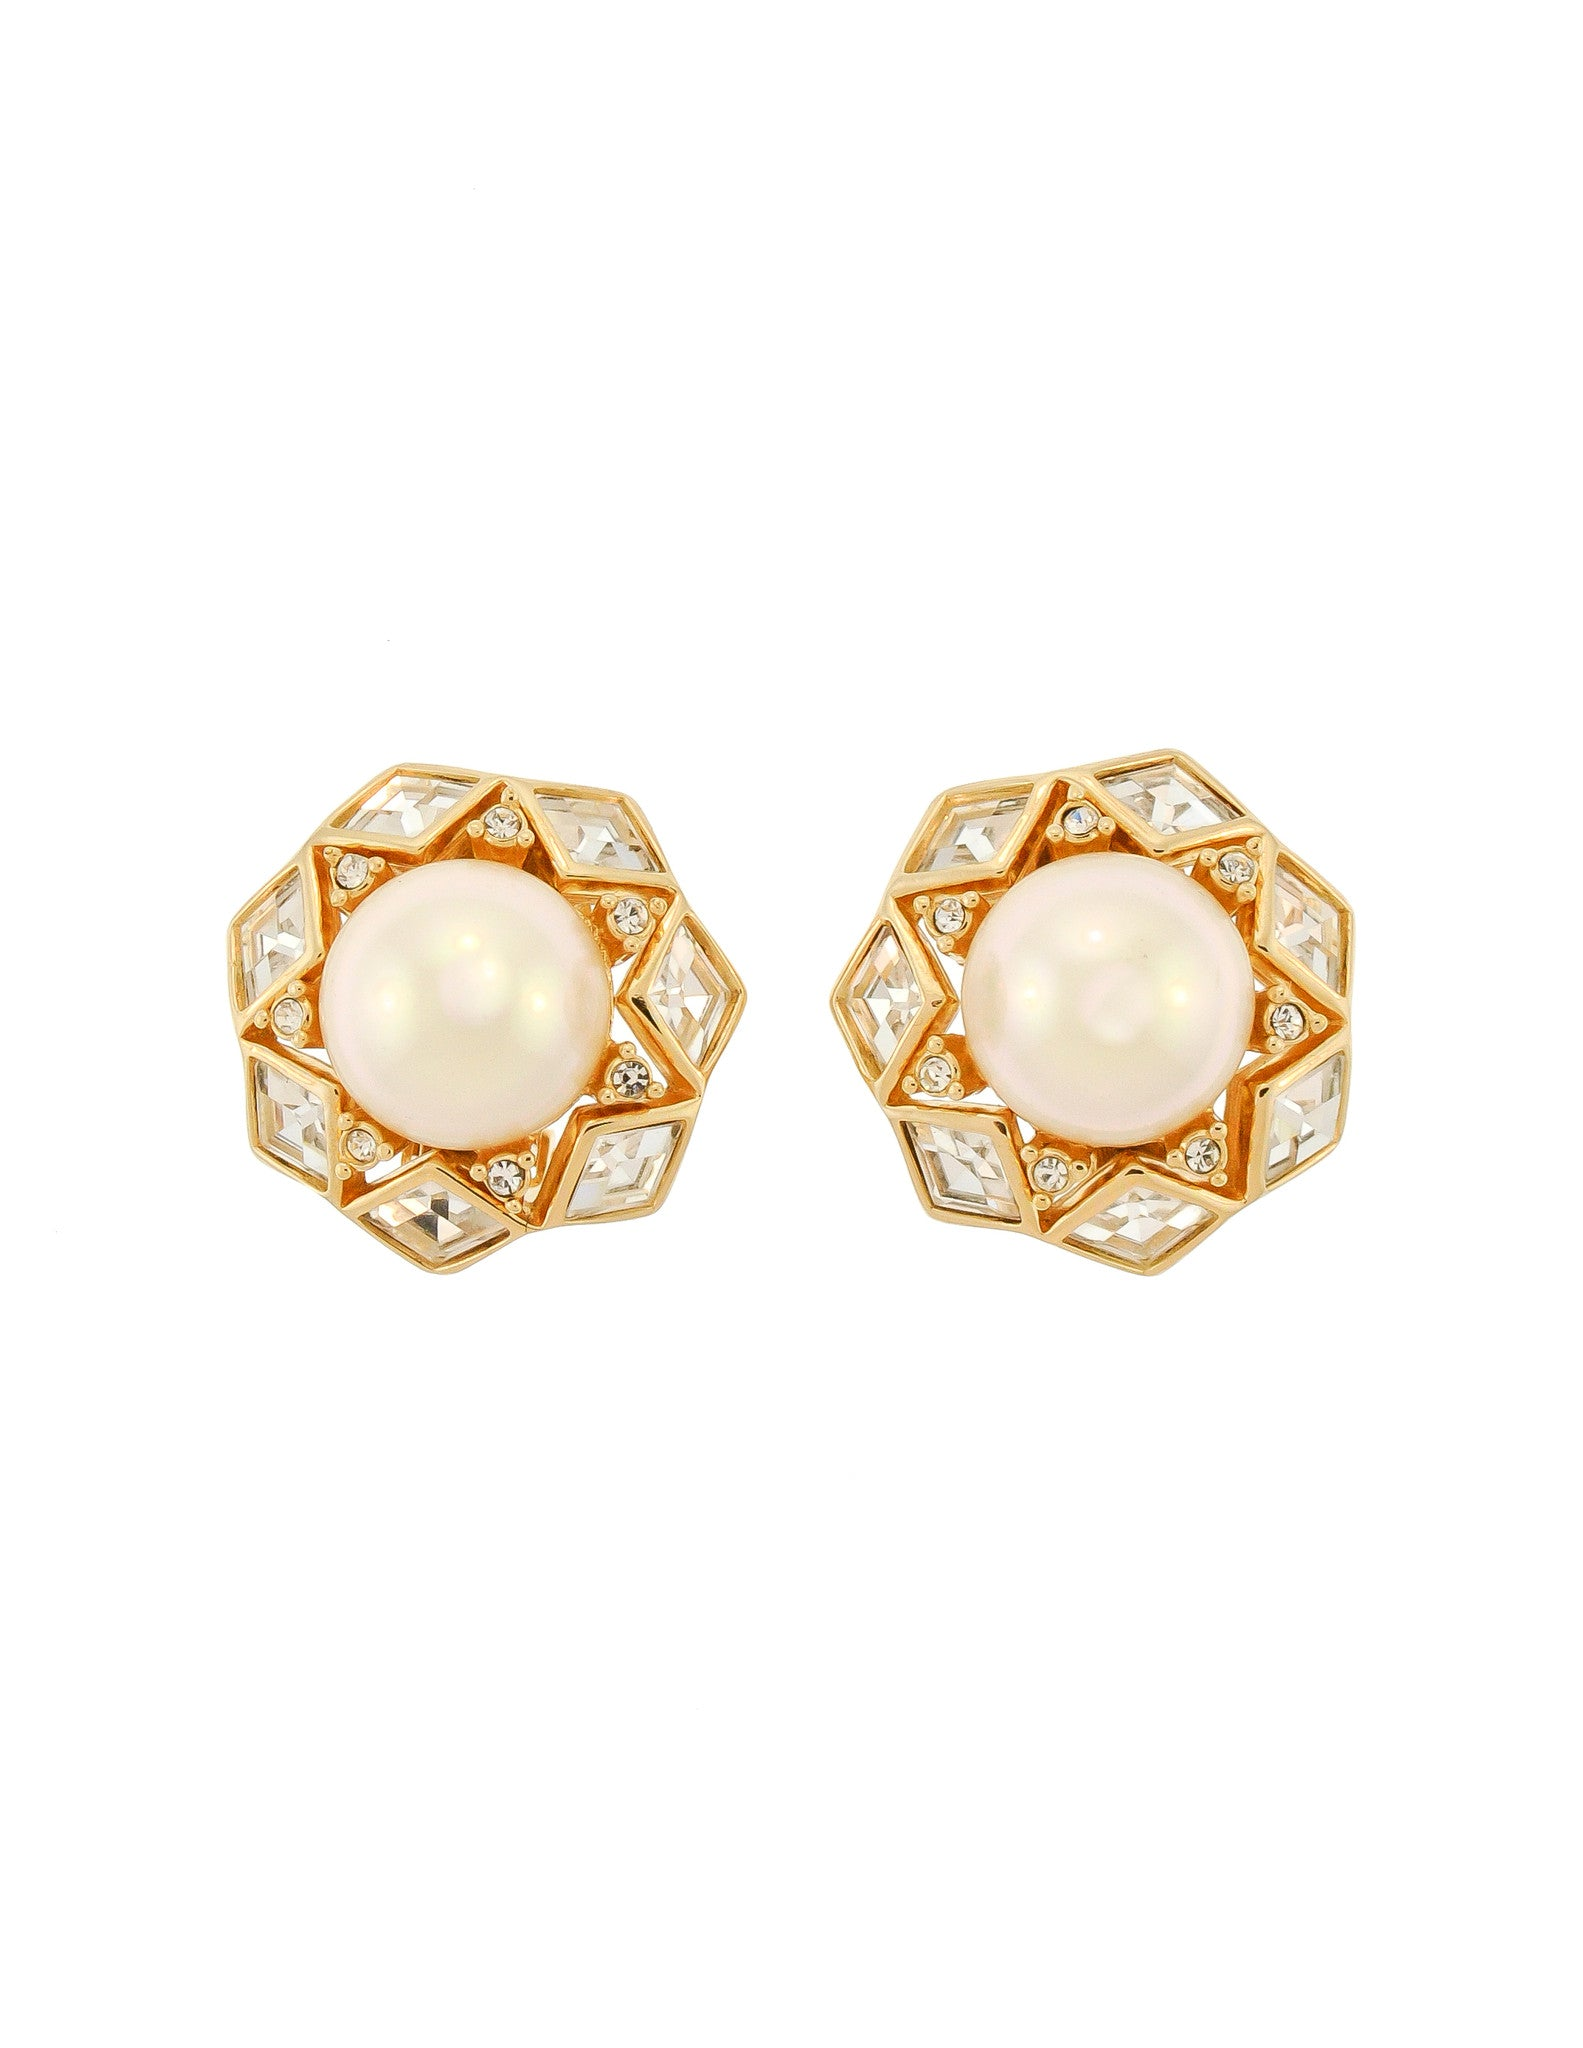 Christian Dior Vintage Gold Rhinestone Pearl Earrings - Amarcord Vintage Fashion  - 1